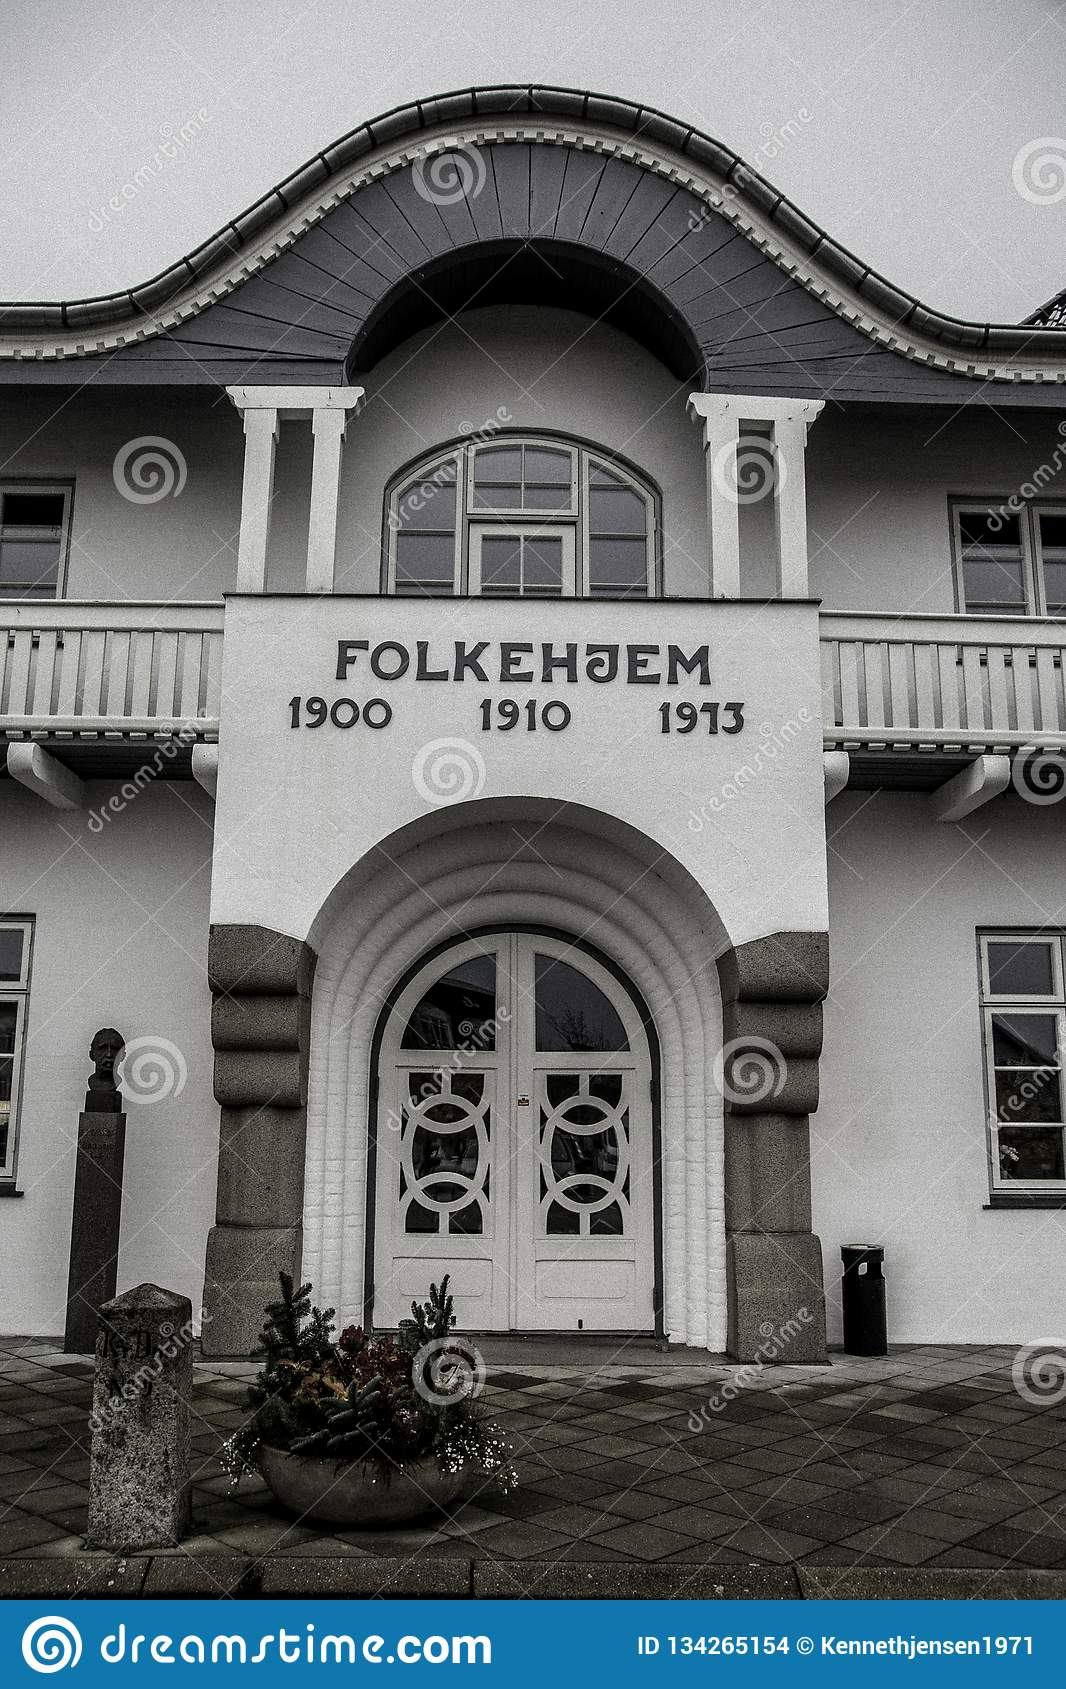 Folkehjem in Aabenraa